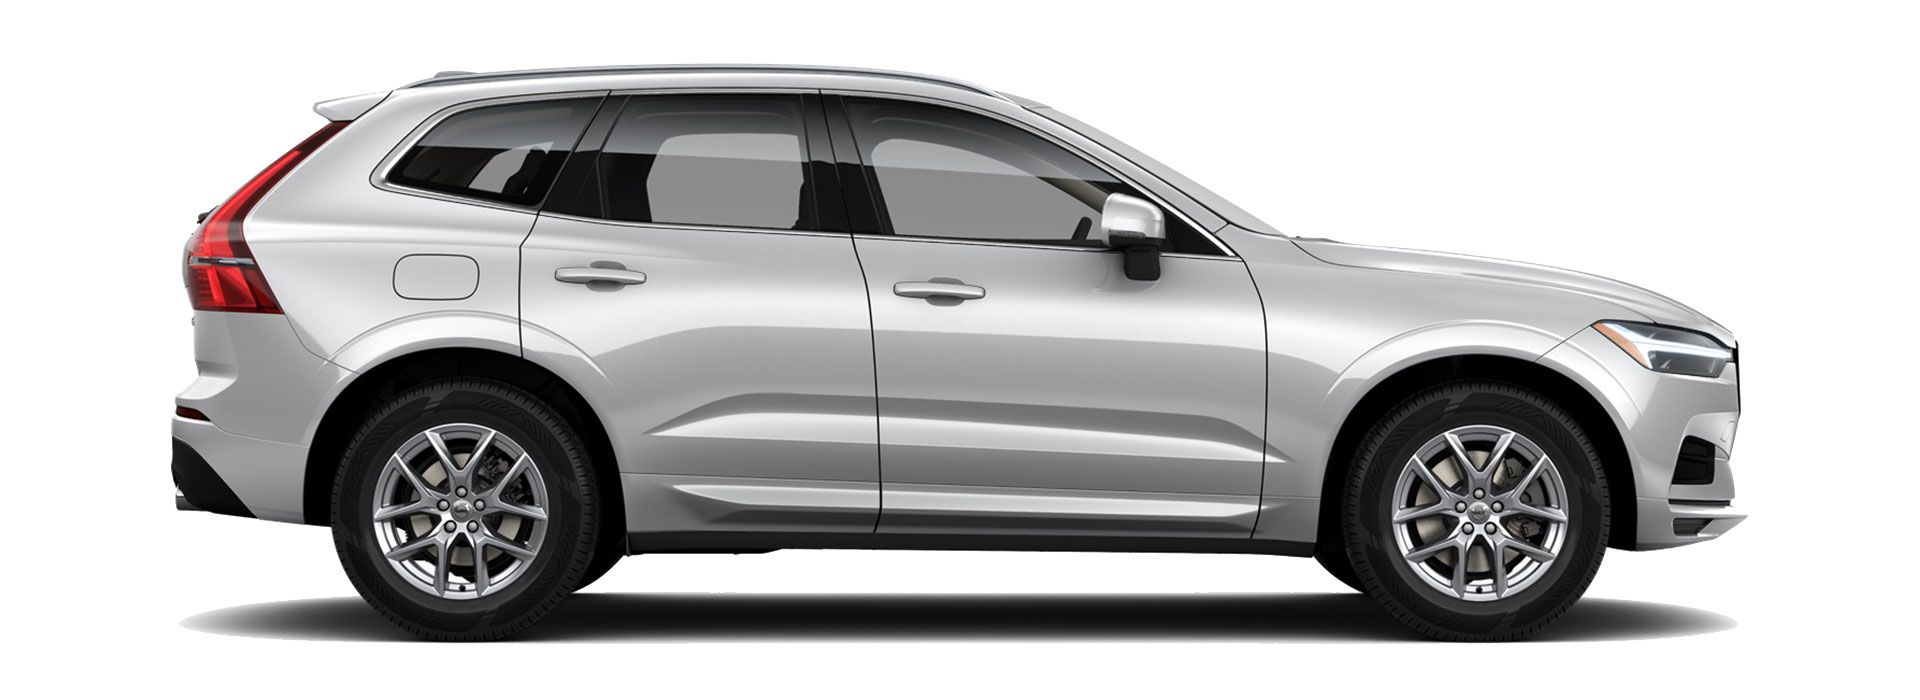 2019 XC60 T5 Momentum AWD Lease Deal in Cincinnati, Ohio